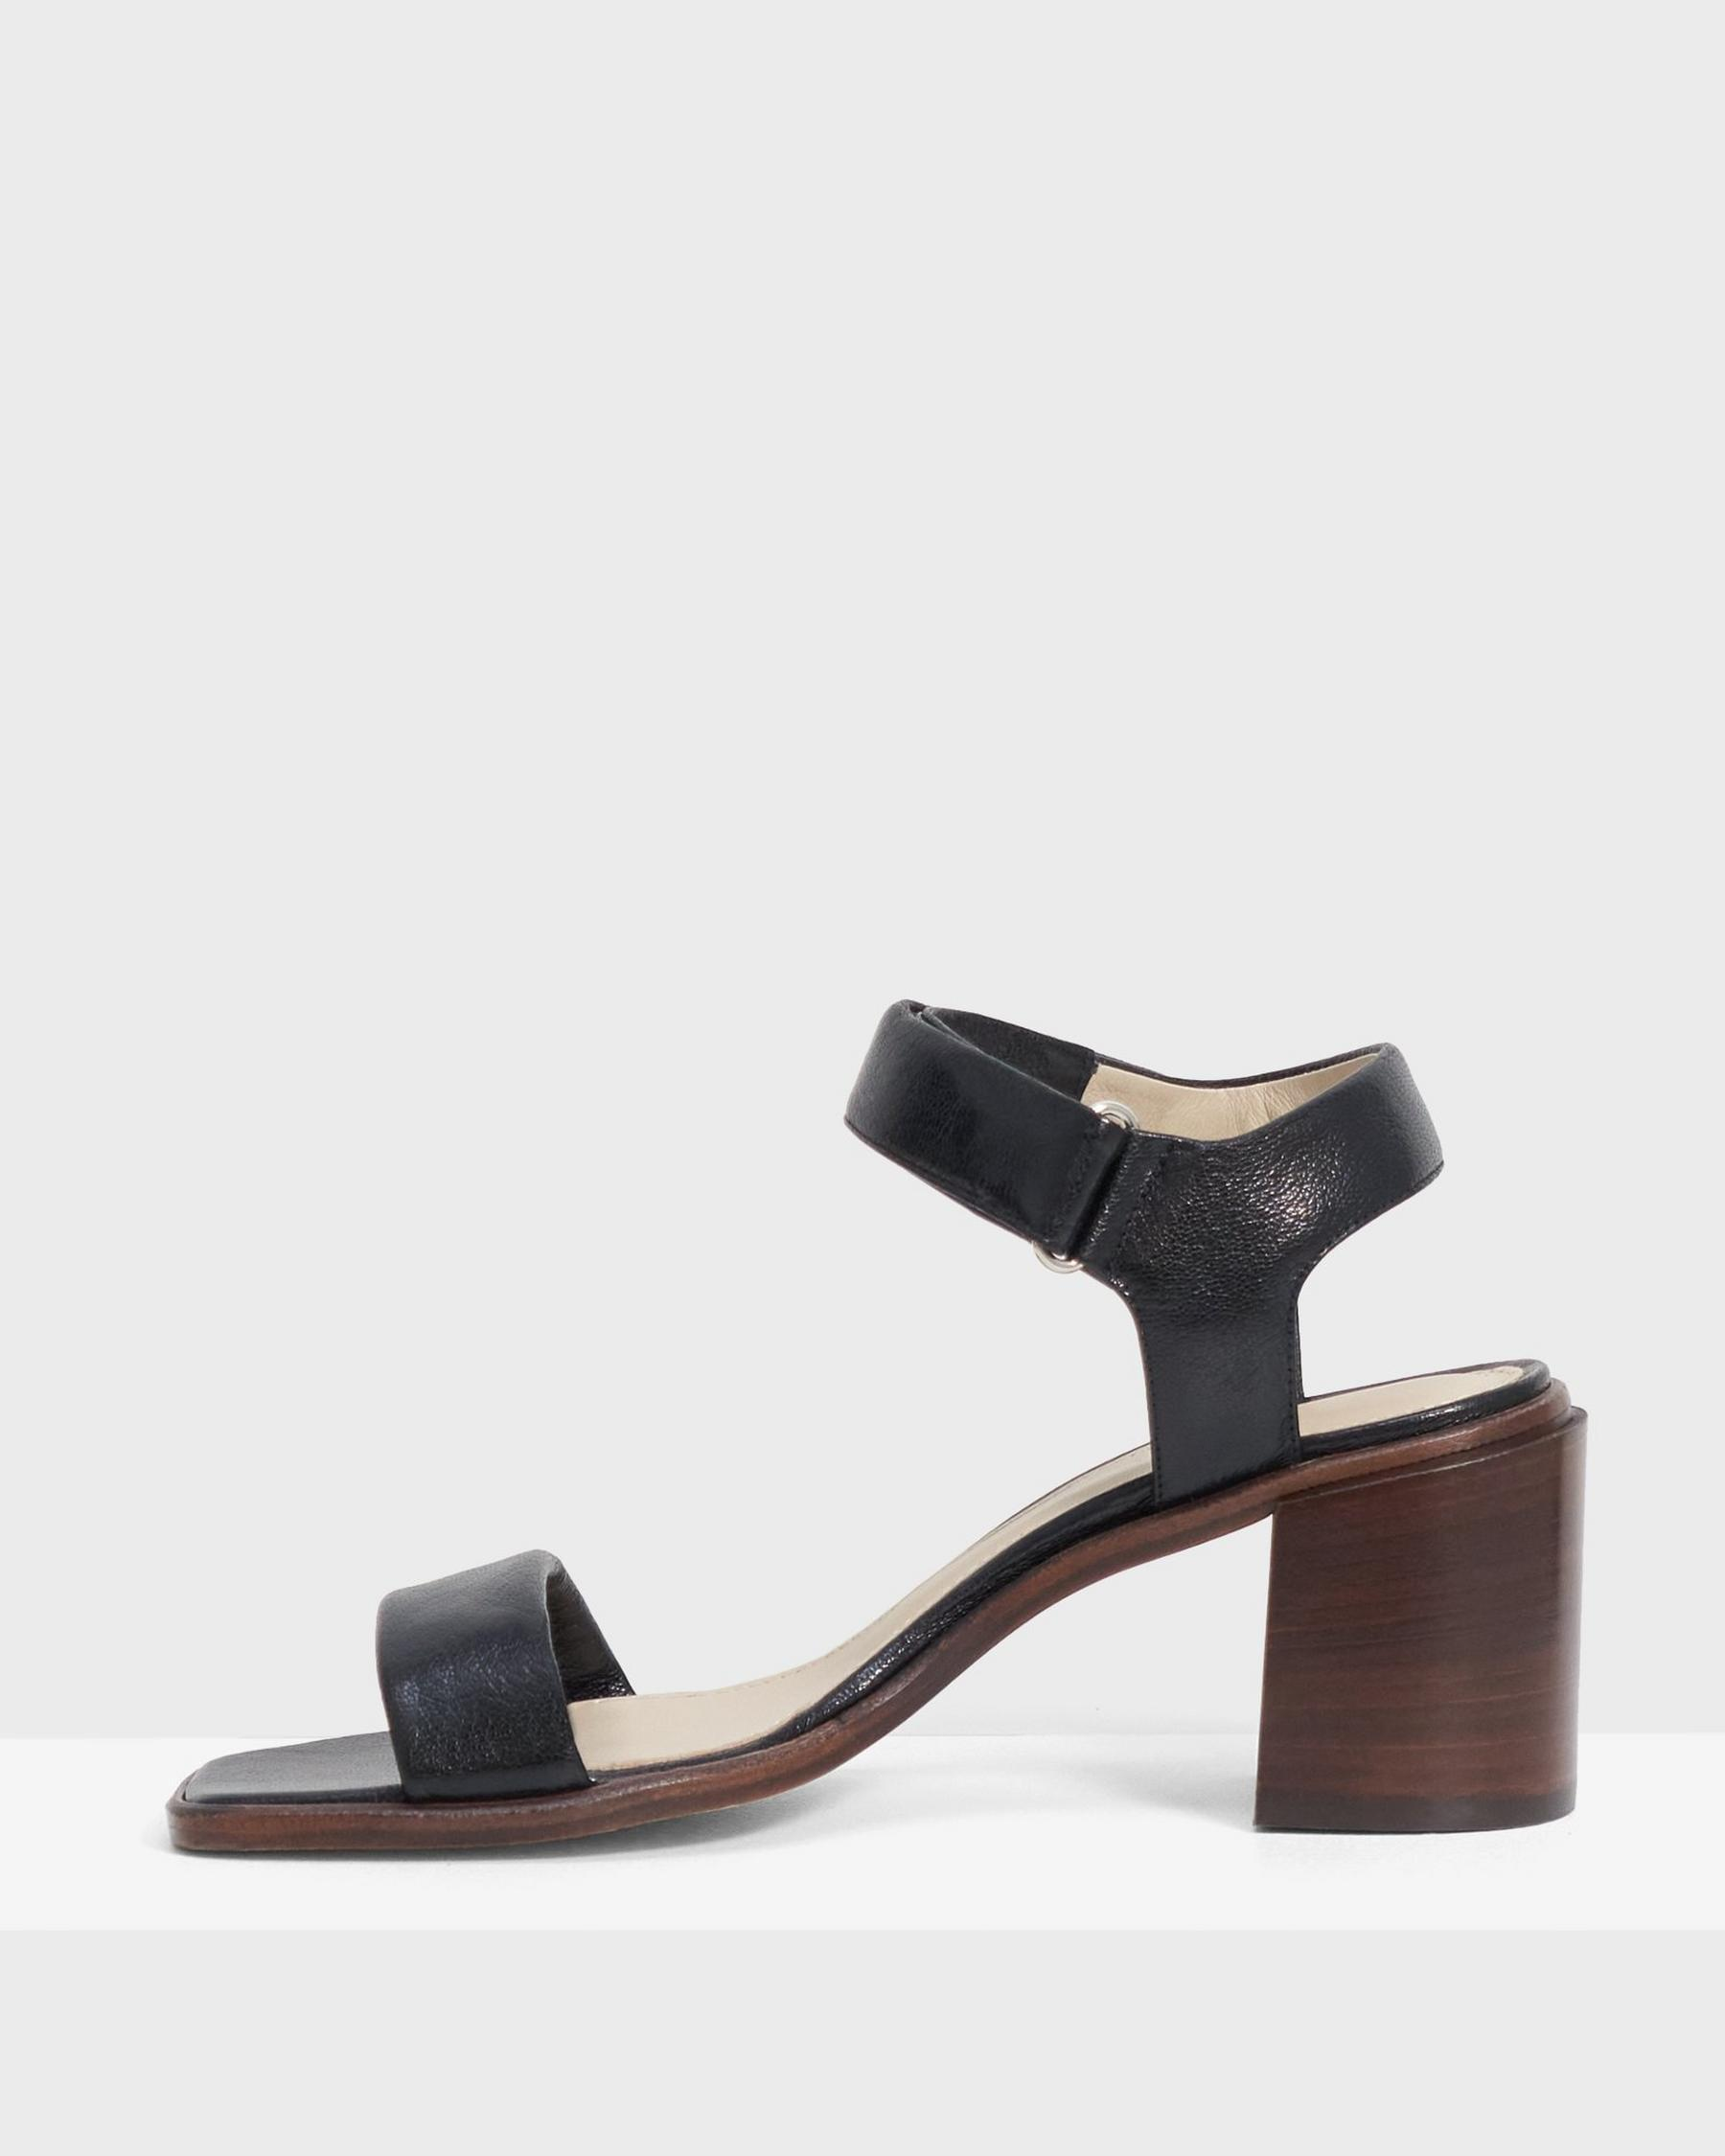 Mid-Ankle Strap Sandal in Leather 4